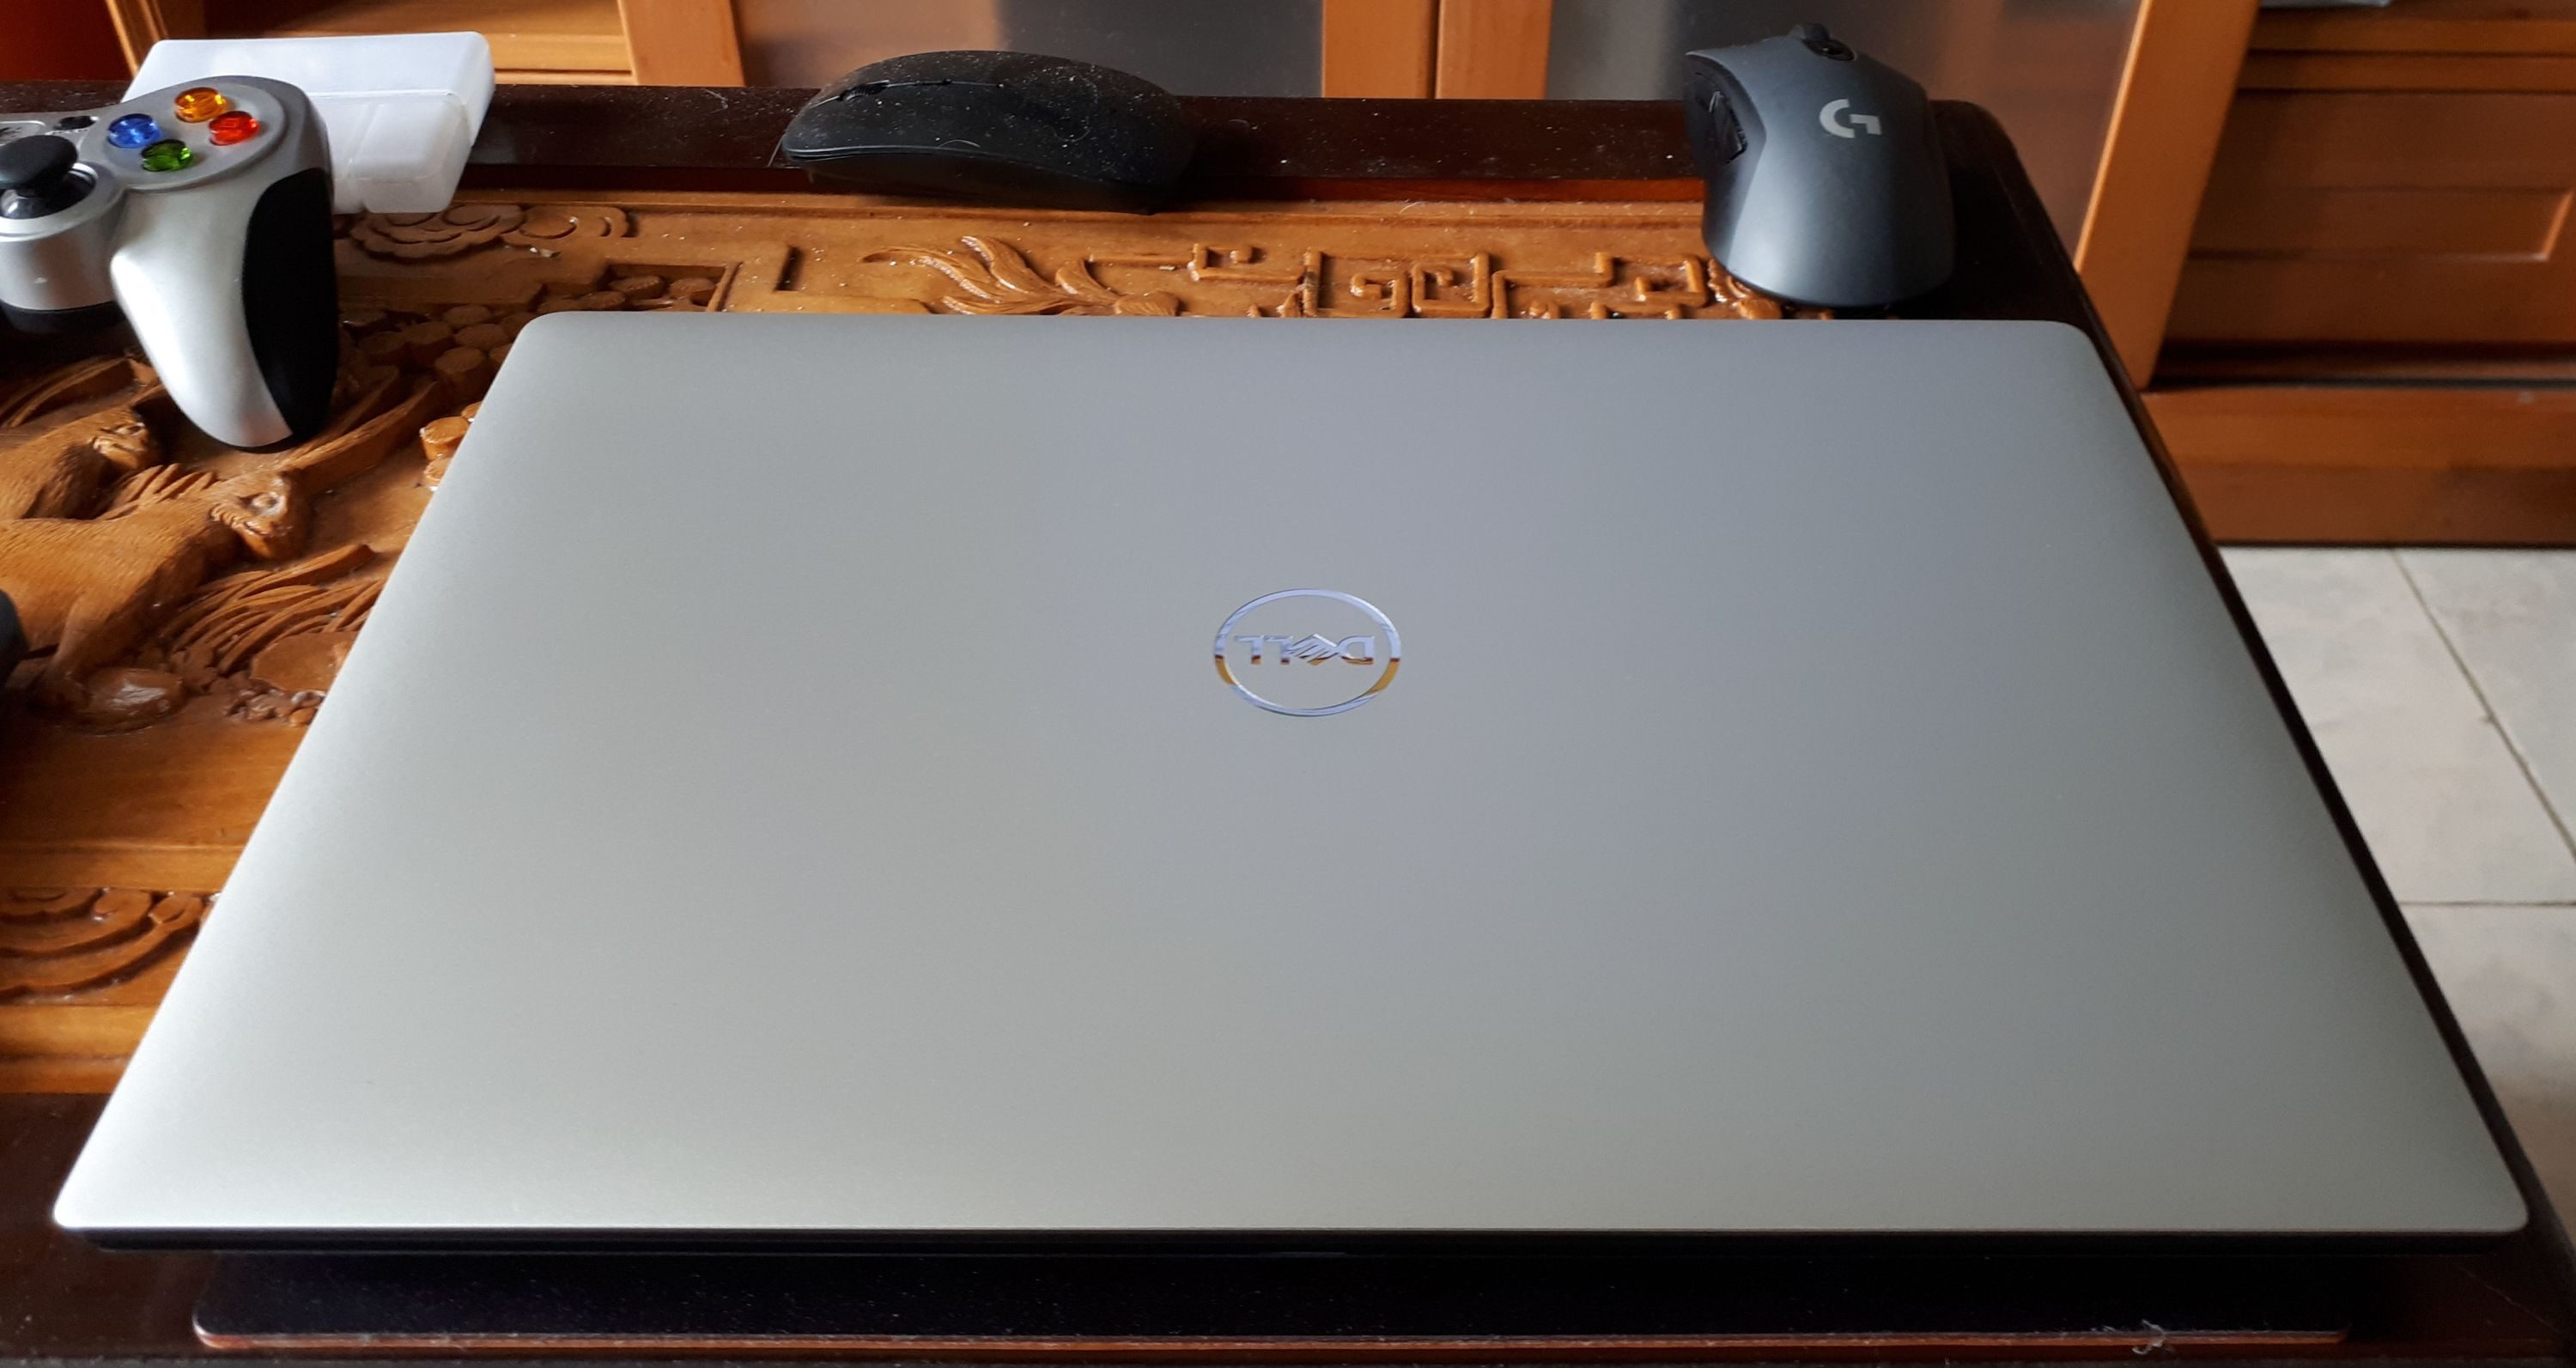 Dell XPS 15 9570 review (i7-8750H, GTX 1050 Ti Max-Q, FHD screen